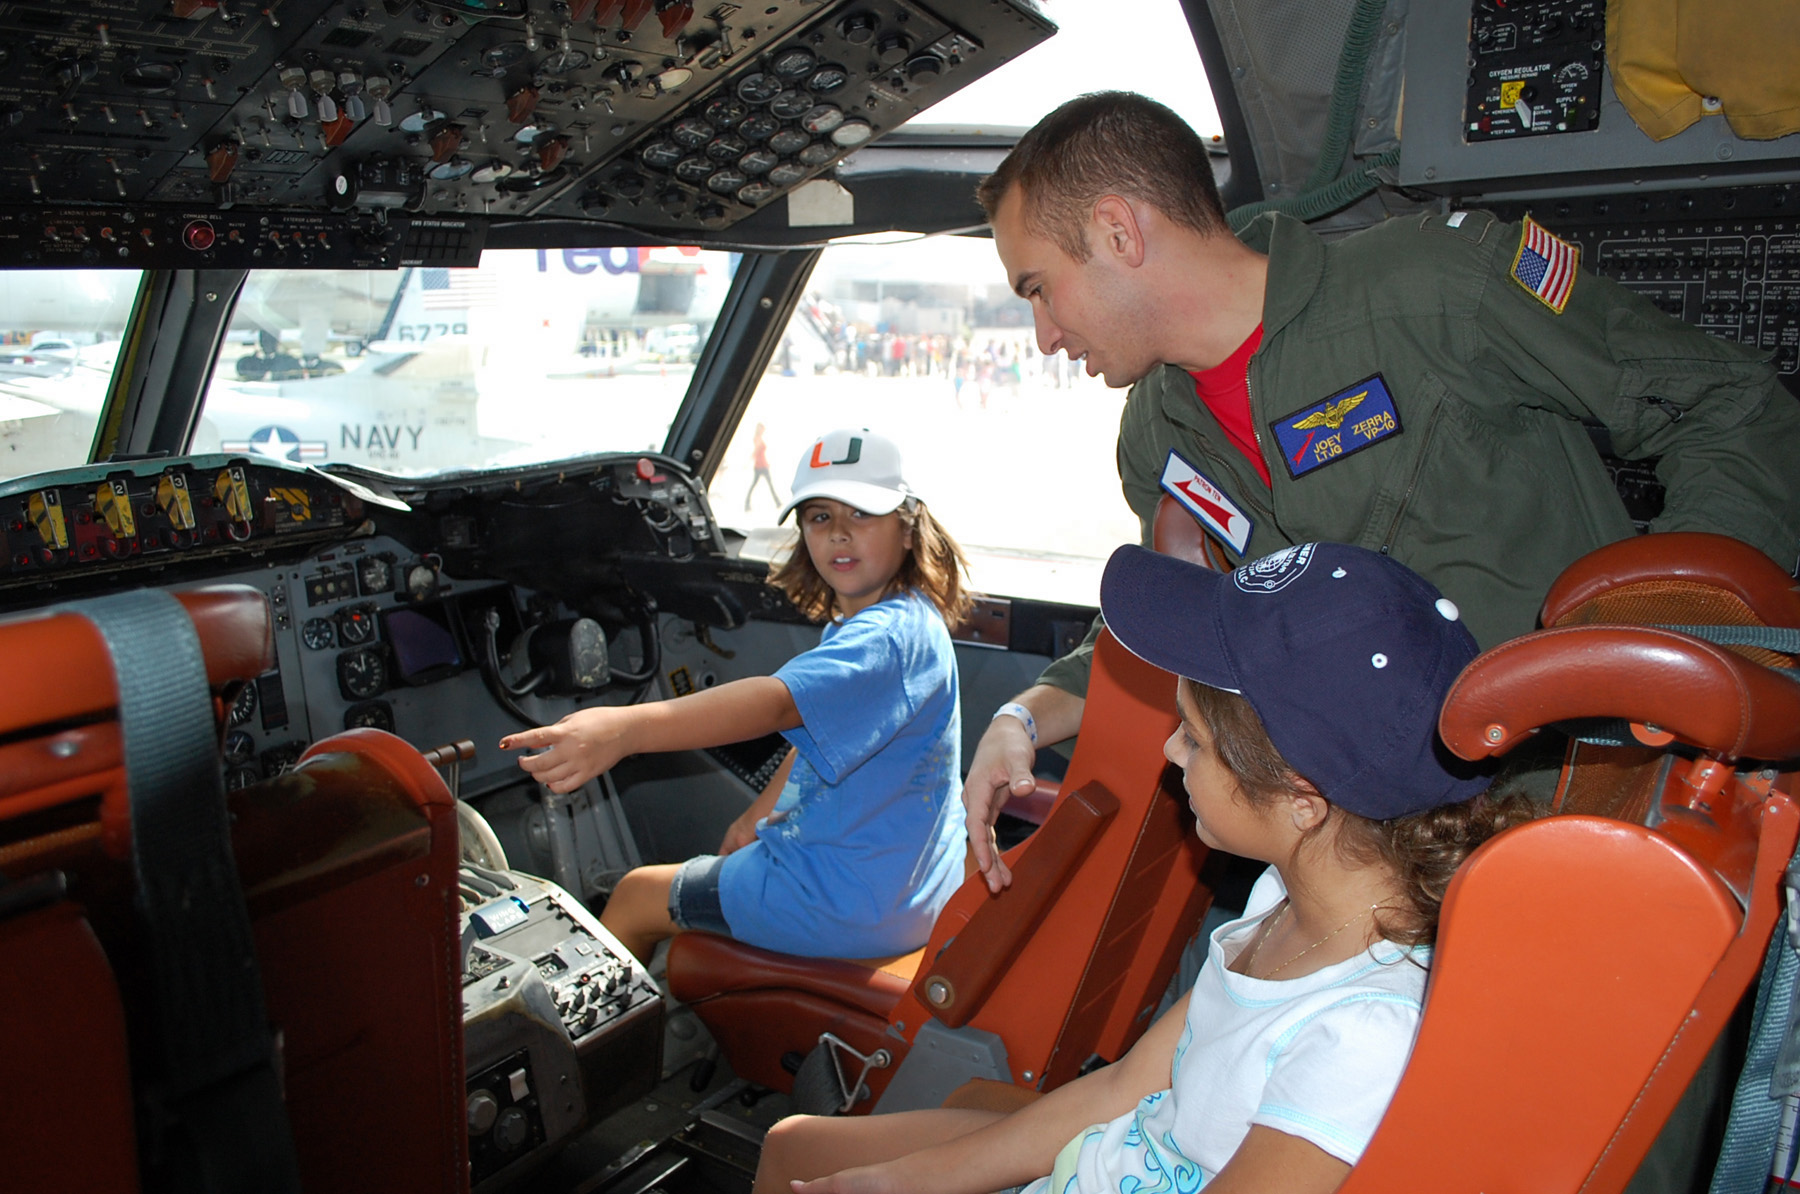 kids airplane show with File Us Navy 101023 N 2425l 001 Lt  J G  Joey Zerra  Assigned To Patrol Squadron  Vp  10  Shows Children The Cockpit Of A P 3 Orion Aircraft During The on Airplane With A Banner 795912 as well Manga Hair Coloring Pages Hairstyles Haircuts Printable Coloring Pages in addition Can A Private Pilot Land An Airliner further An Amazing Array Of Custom Action Figures furthermore Letter D Activities For Preschool.